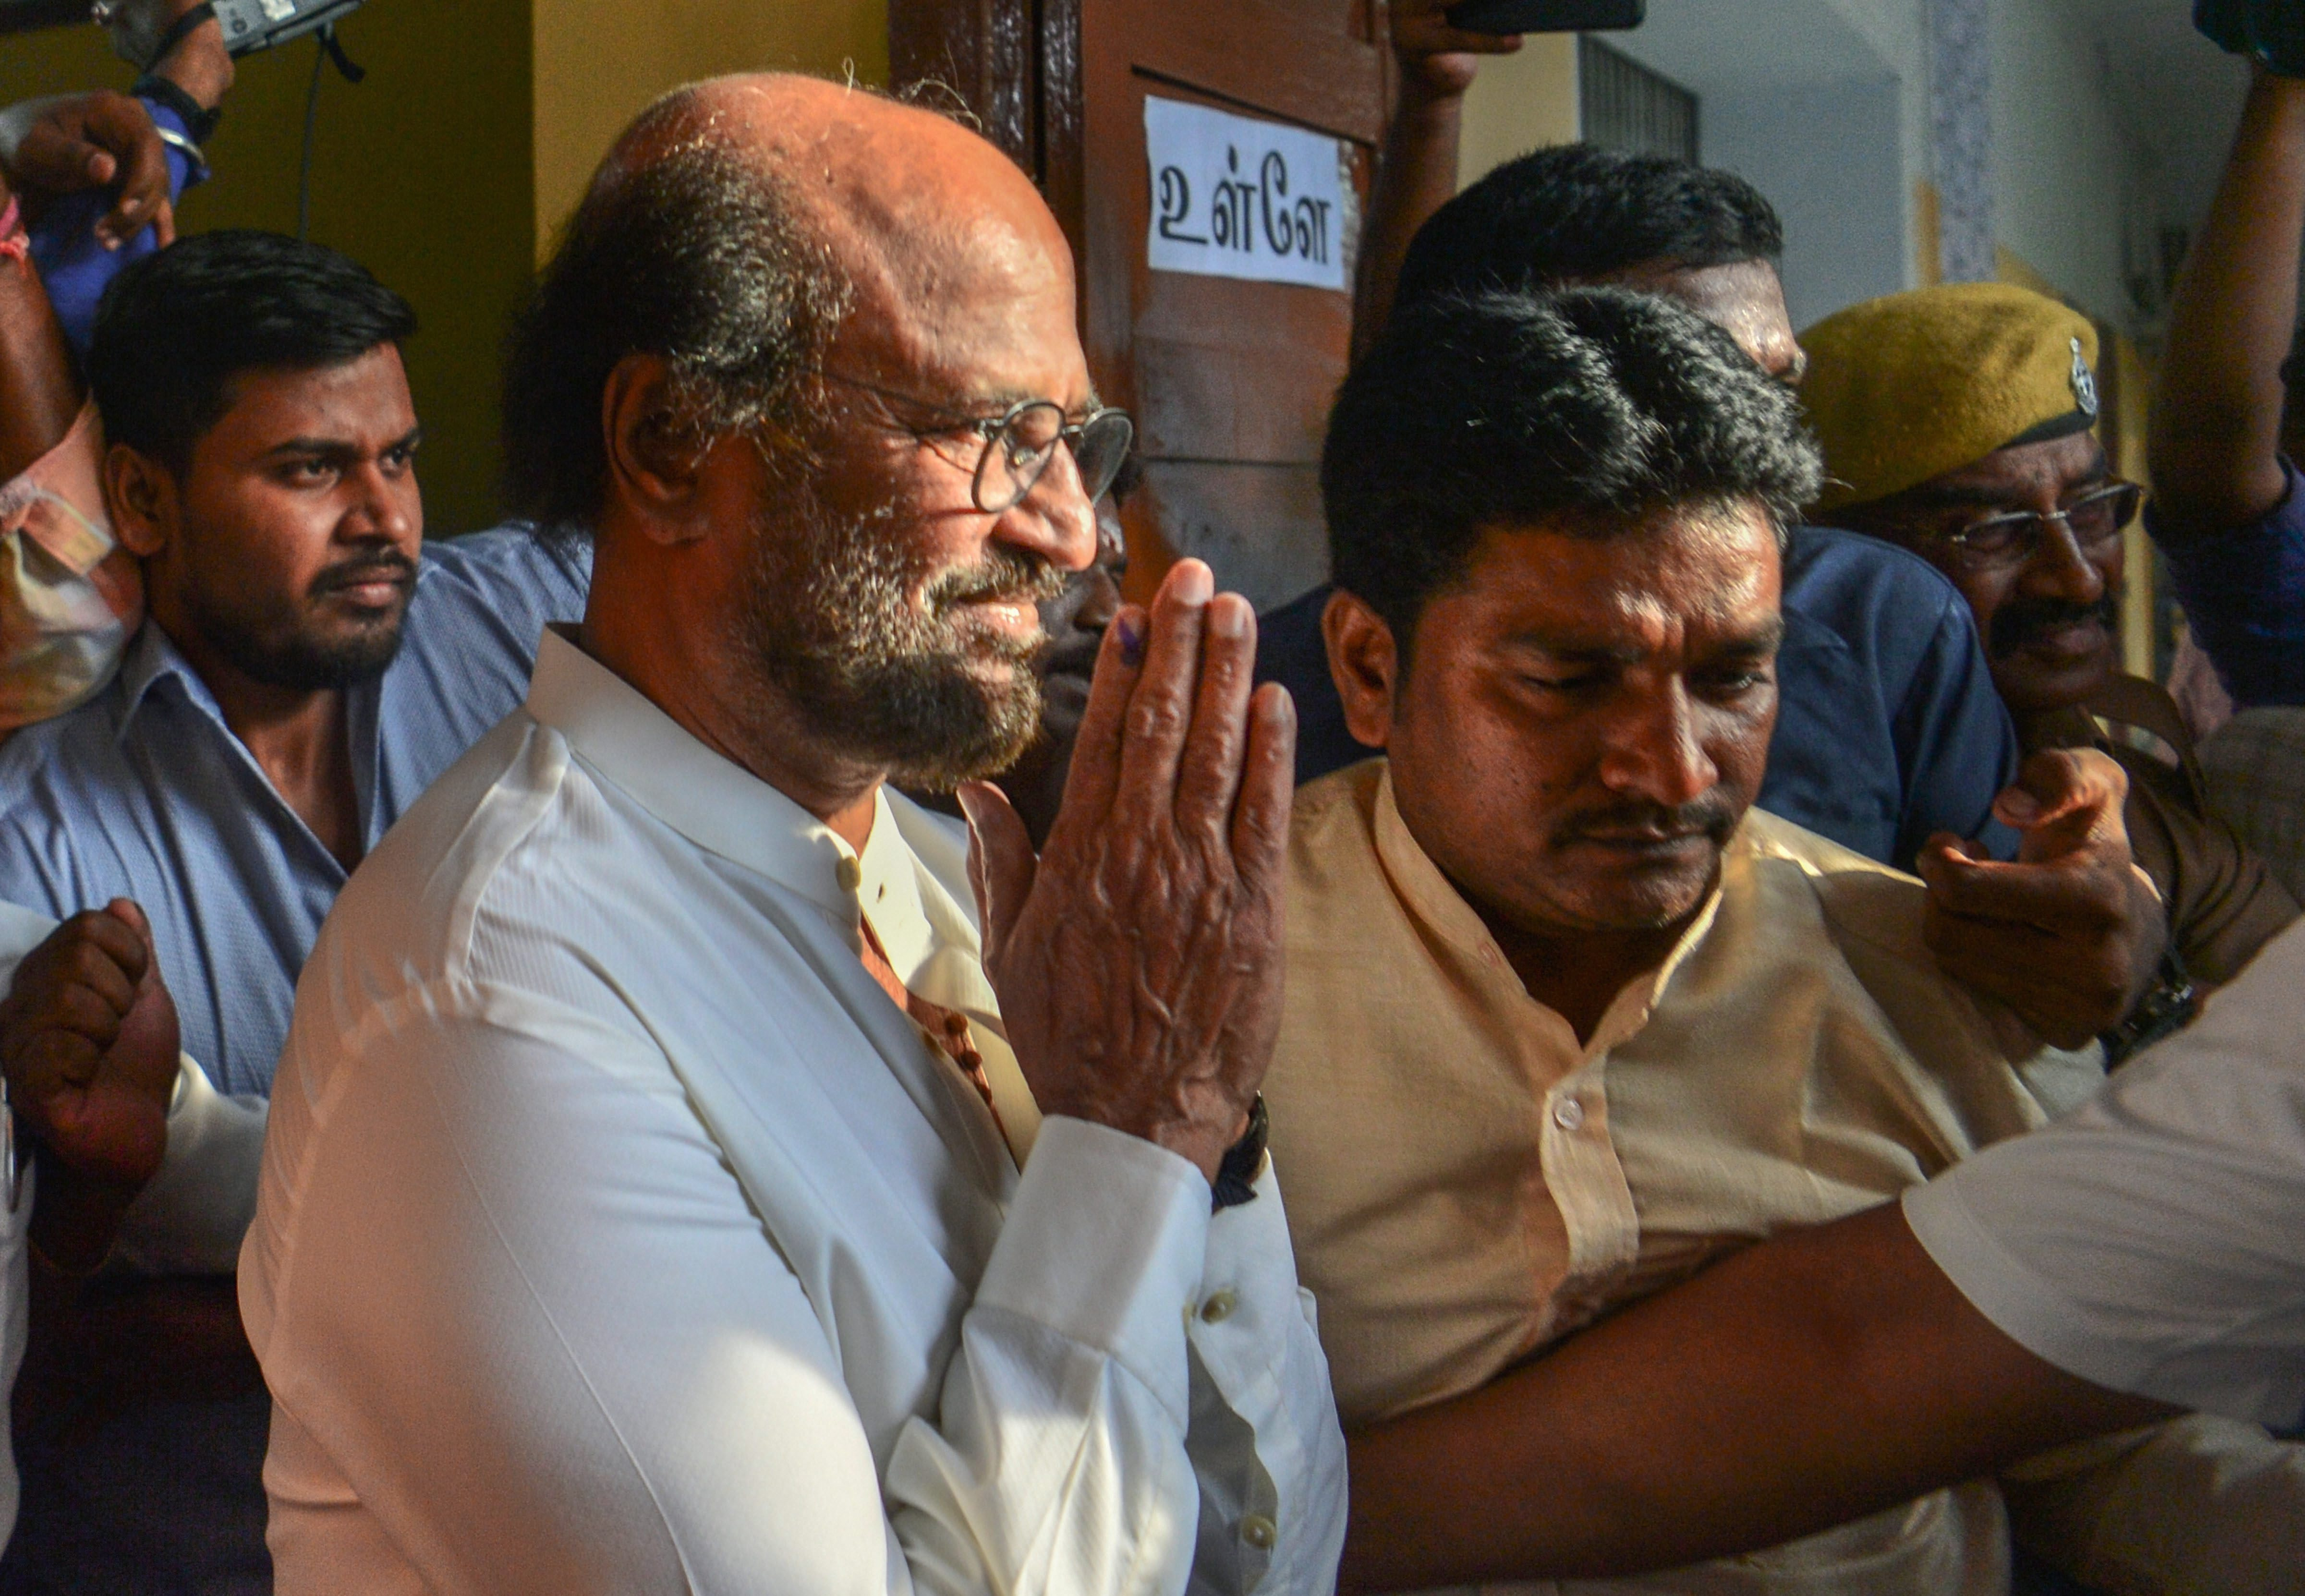 Actor-turned-politician Rajinikanth after casting vote for the second phase of the general elections, at a polling station in Chennai on Thursday, April 18, 2019.